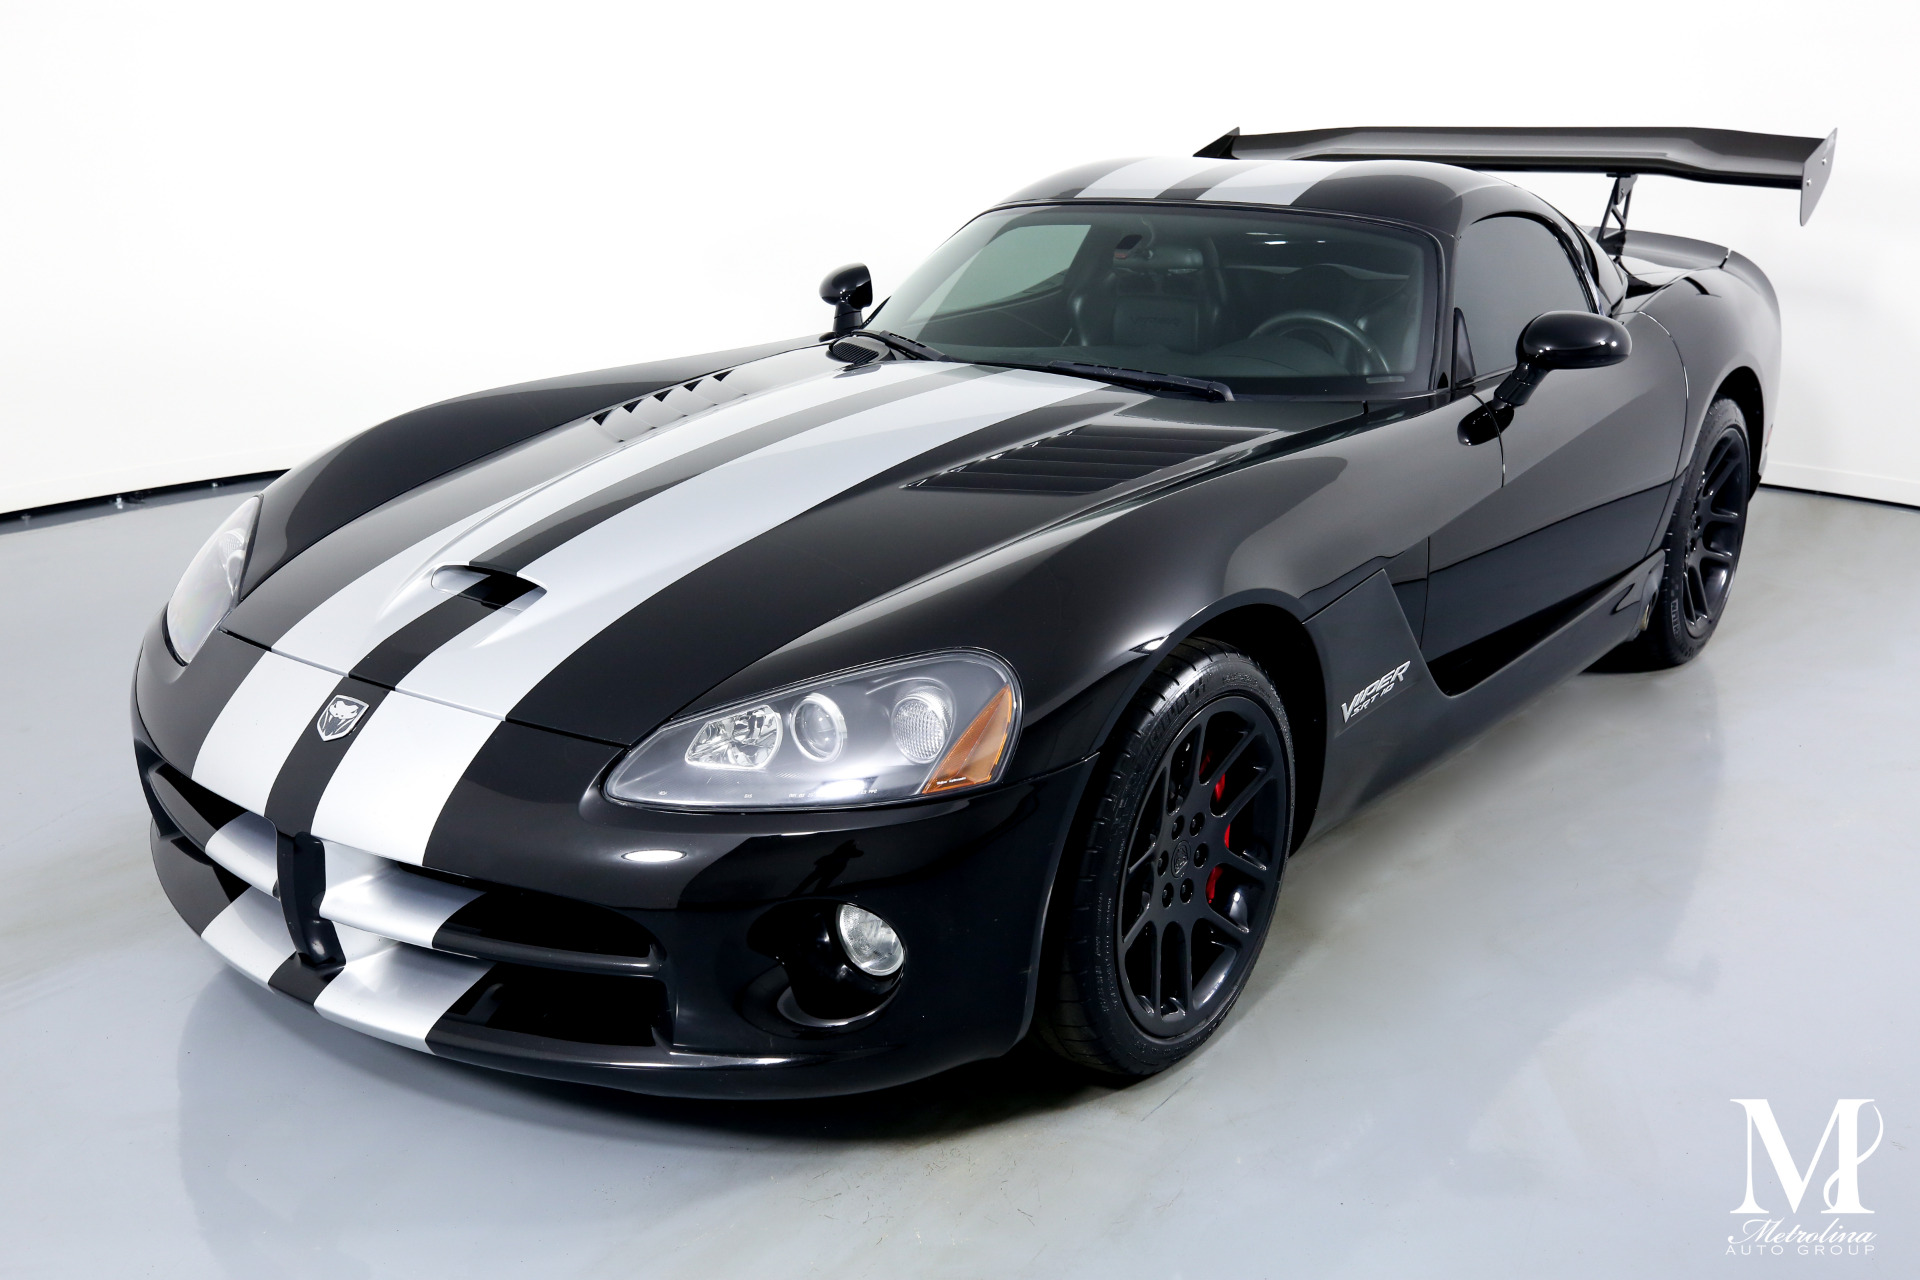 Used 2006 Dodge Viper SRT-10 for sale $64,996 at Metrolina Auto Group in Charlotte NC 28217 - 4